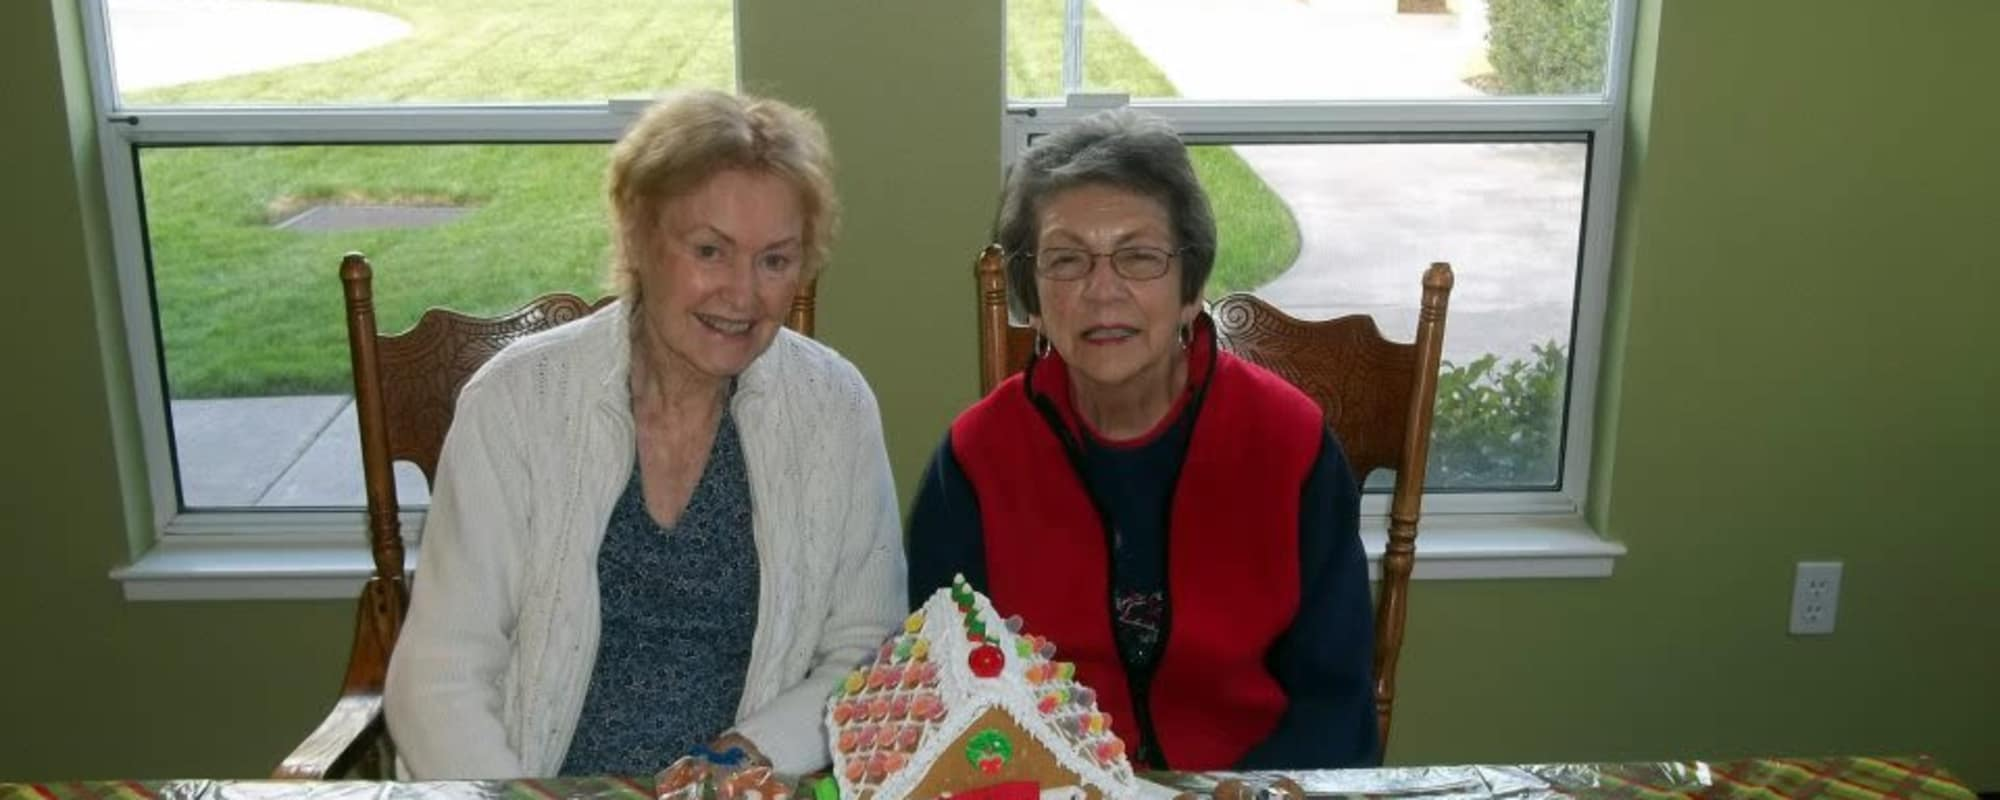 Senior and Gingerbread house at MuirWoods Memory Care in Petaluma, California